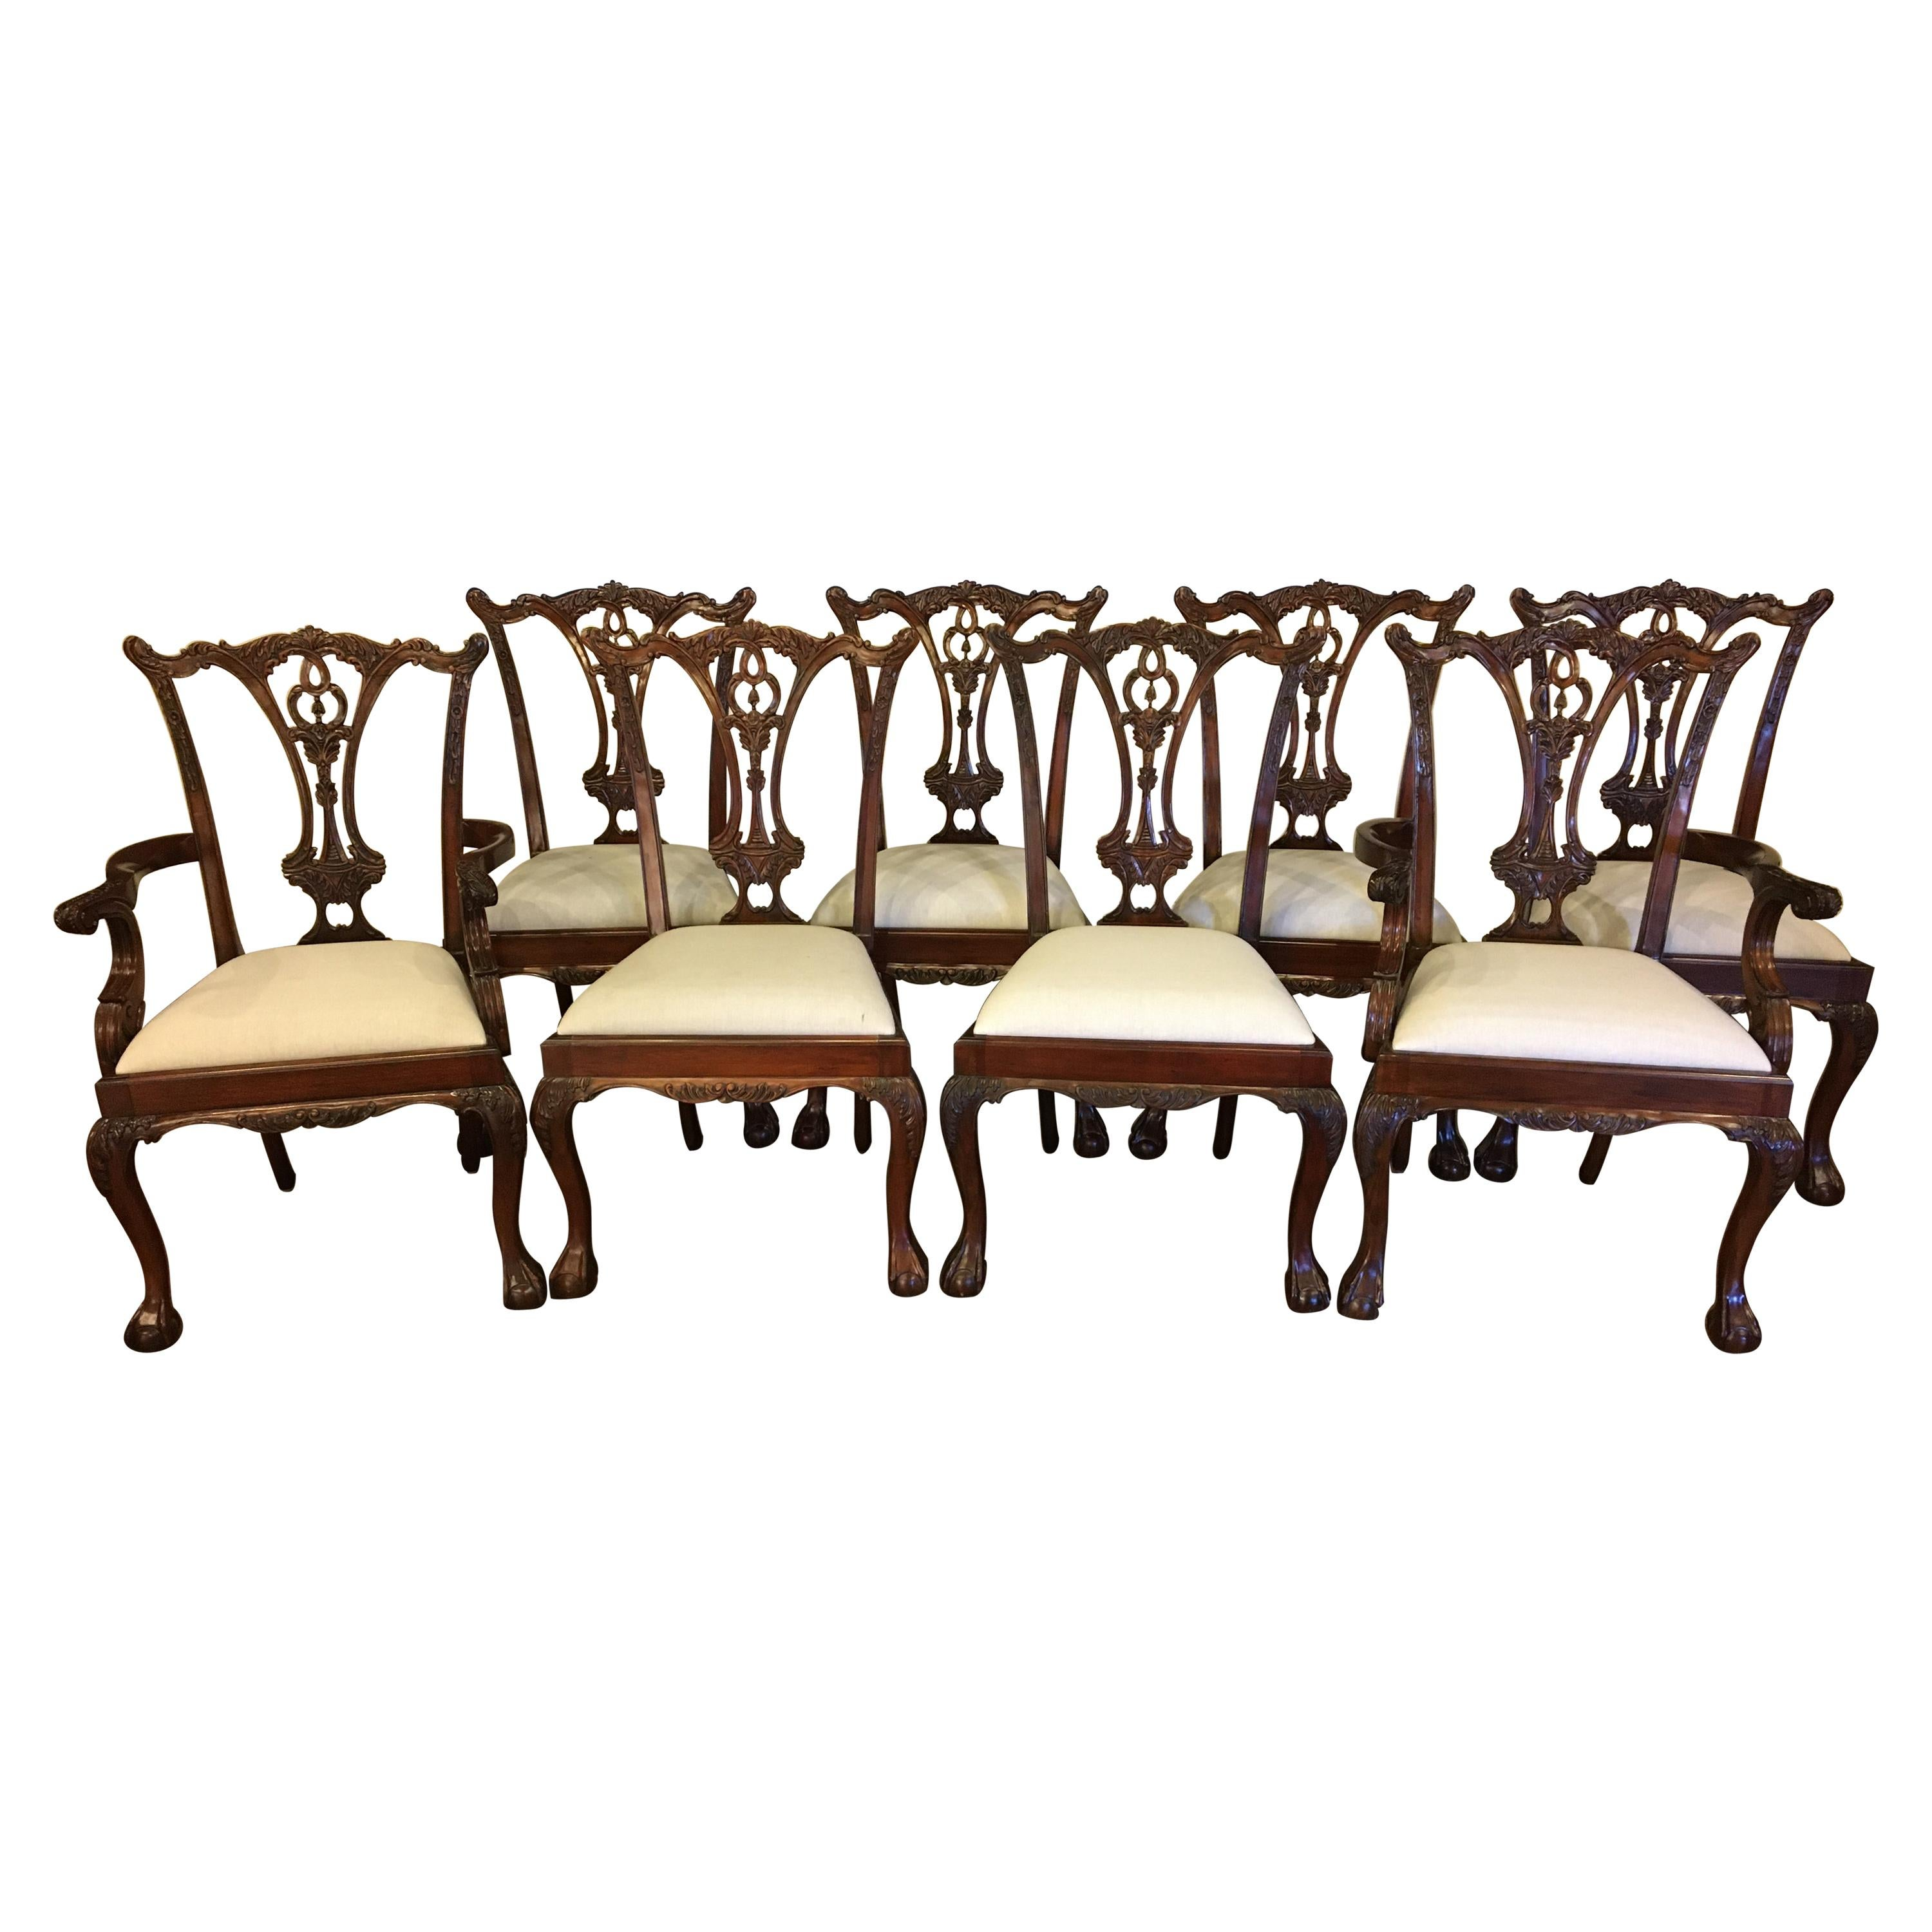 Eight New Mahogany Chippendale Ball and Claw Dining Chairs by Leighton Hall